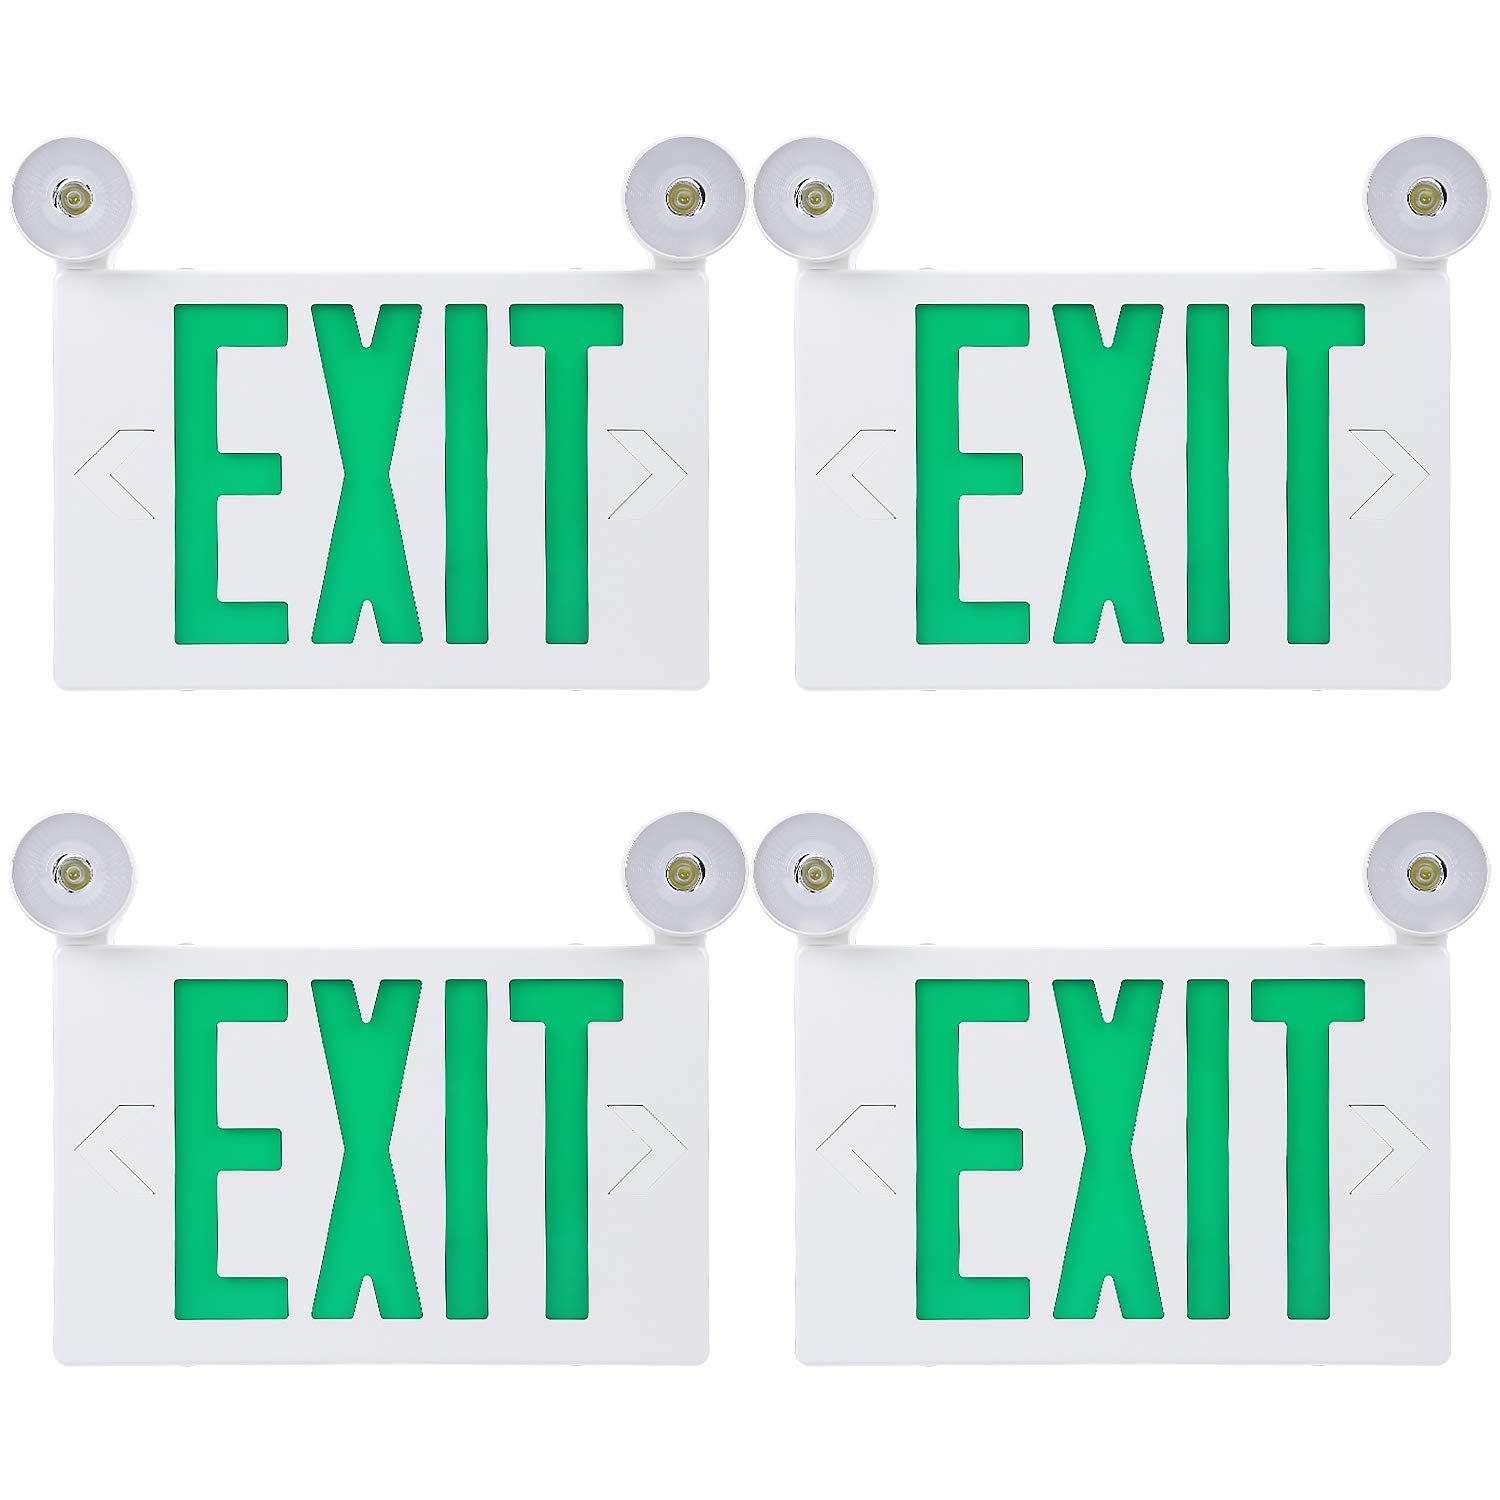 TORCHSTAR Green Letter LED Exit Sign, Double Face Emergency Light, AC 120V/277V, Battery Included, Top/Side/Back Mount Sign Light with 2 Adjustable Head, UL Listed for Commercial Grade, Pack of 4